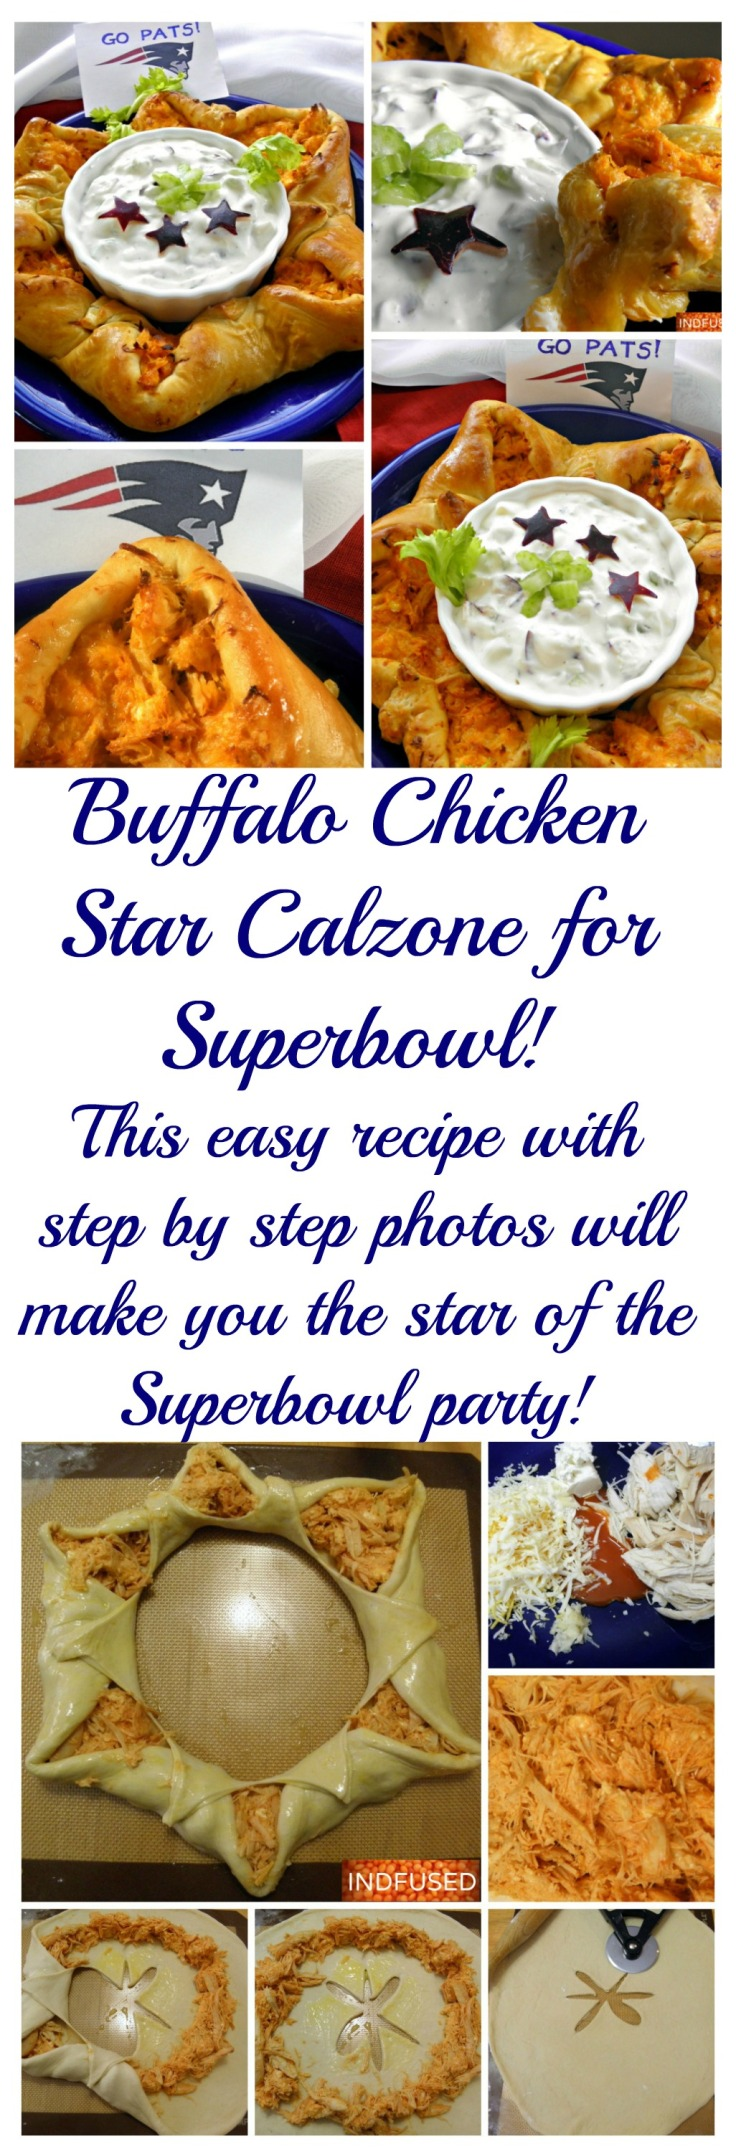 Easy recipe for #buffalochicken #calzone for #superbowlparty